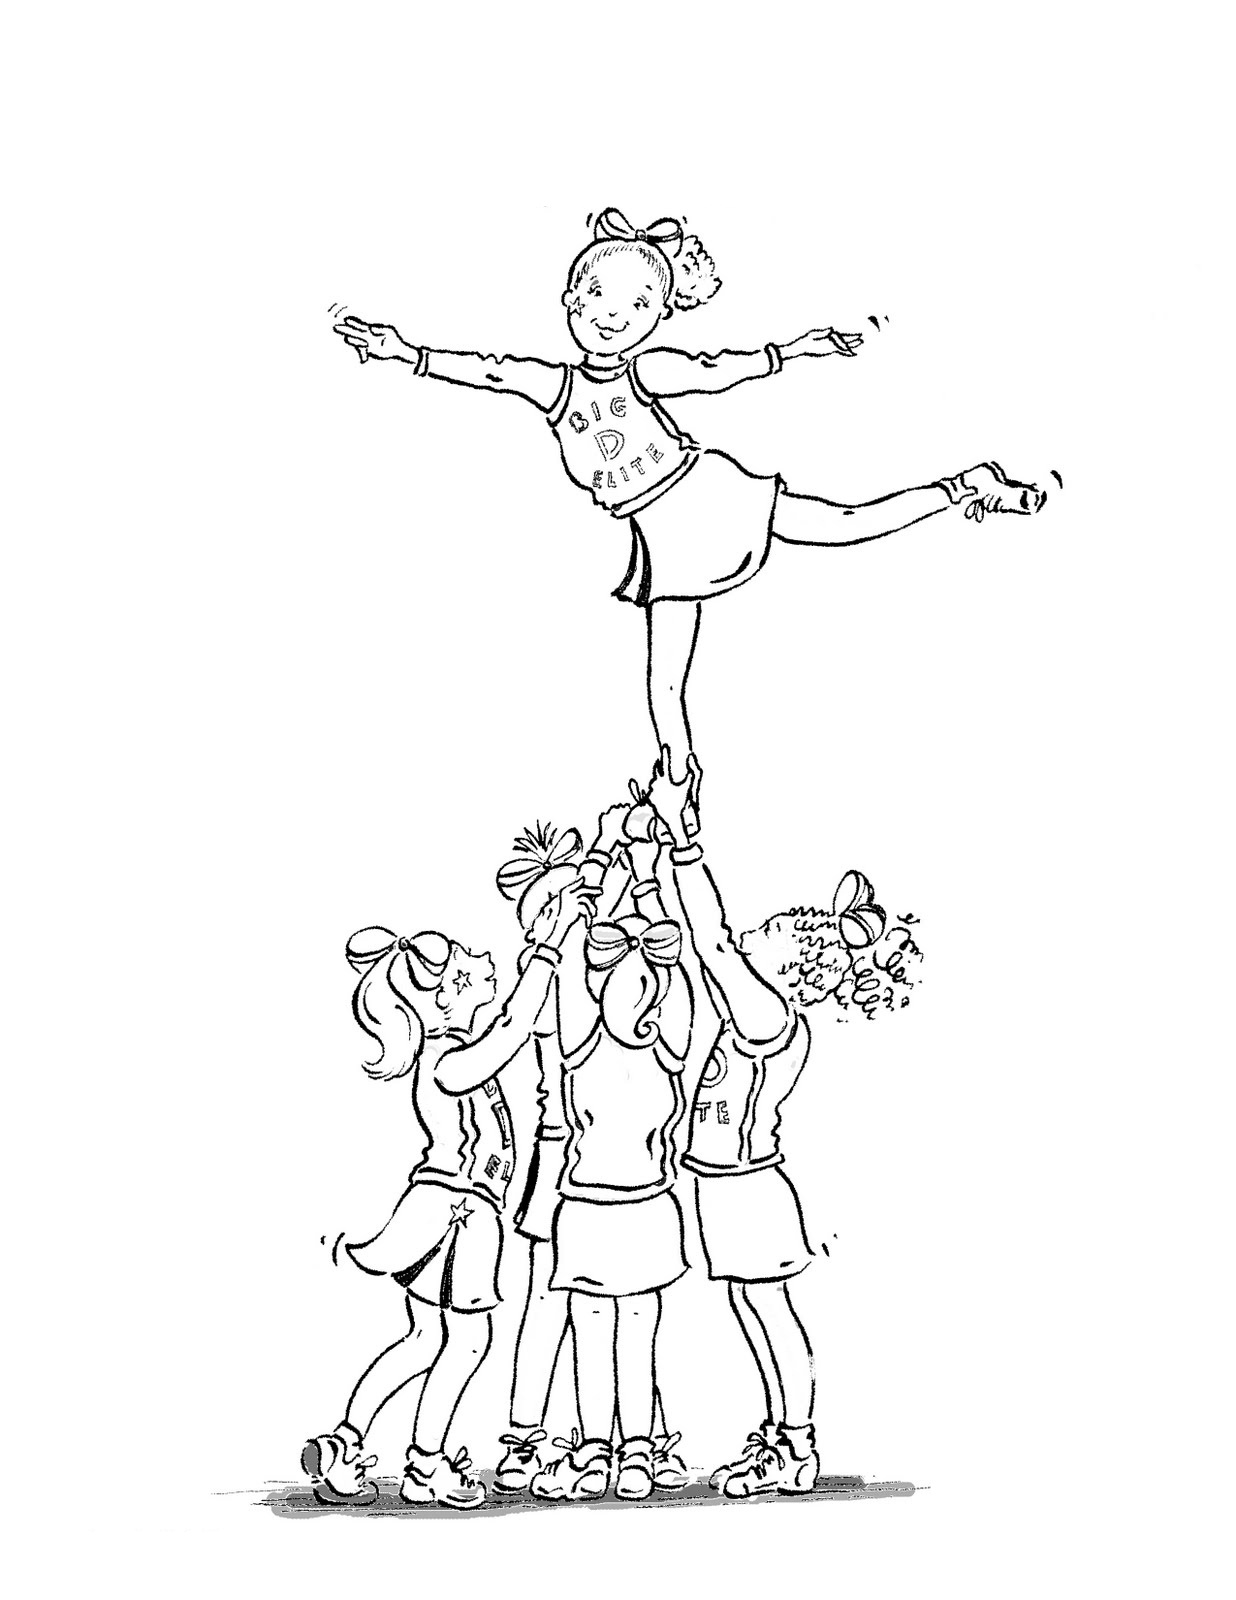 cheer coloring pages cheerleading coloring pages birthday printable pages cheer coloring